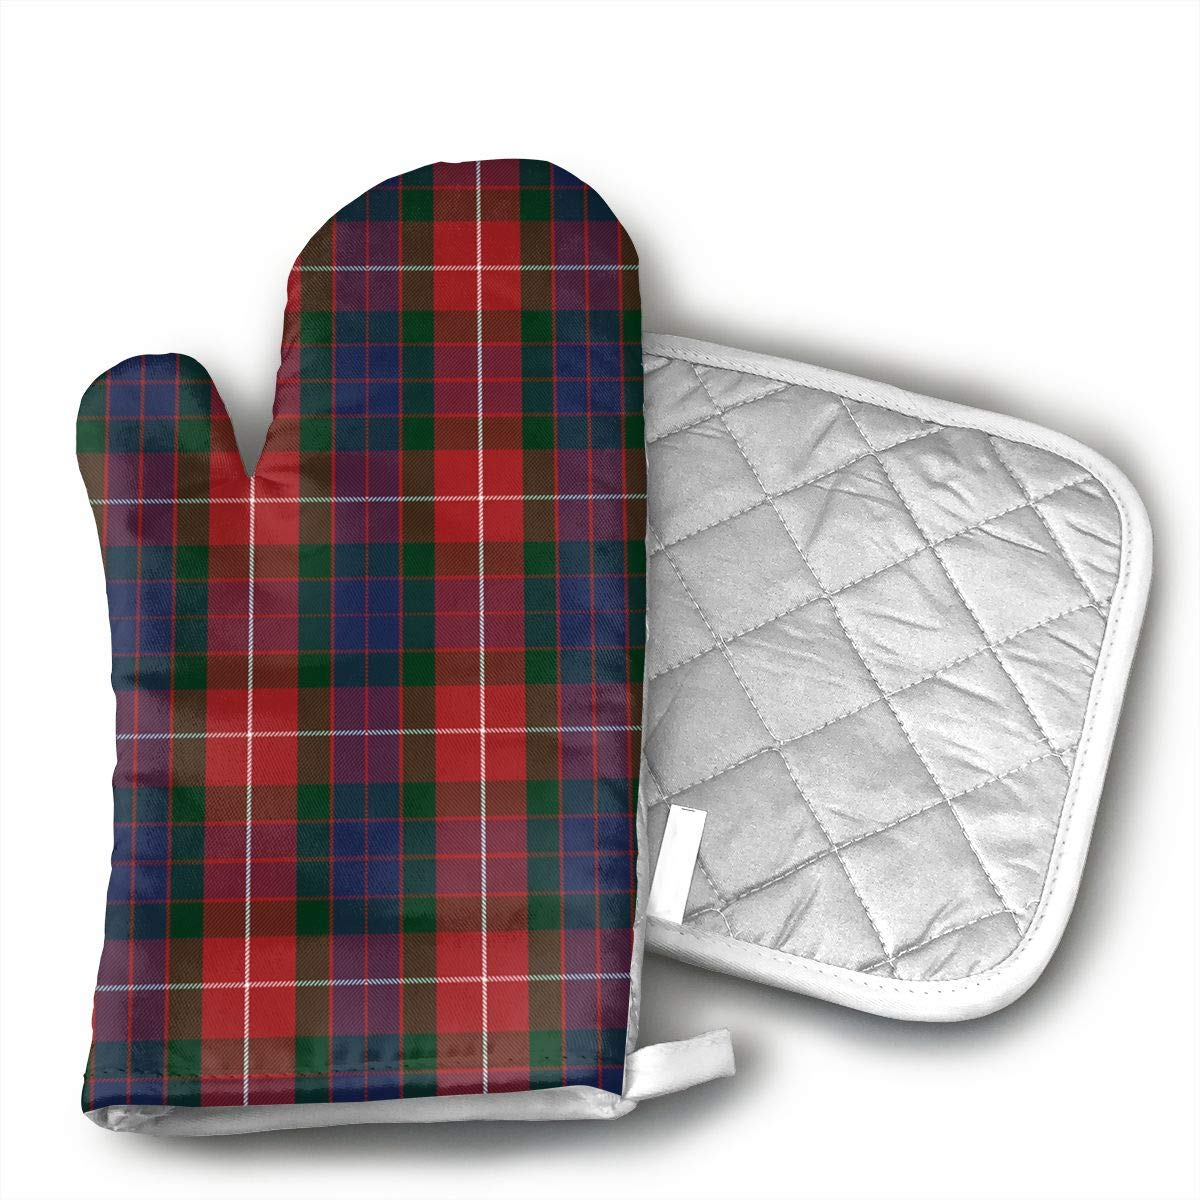 Xayeu Fraser Red Tartan Oven Mitts,Heat Resistant Microwave BBQ Oven Insulation Cotton Gloves Baking Pot Mitts Kitchen Cooking